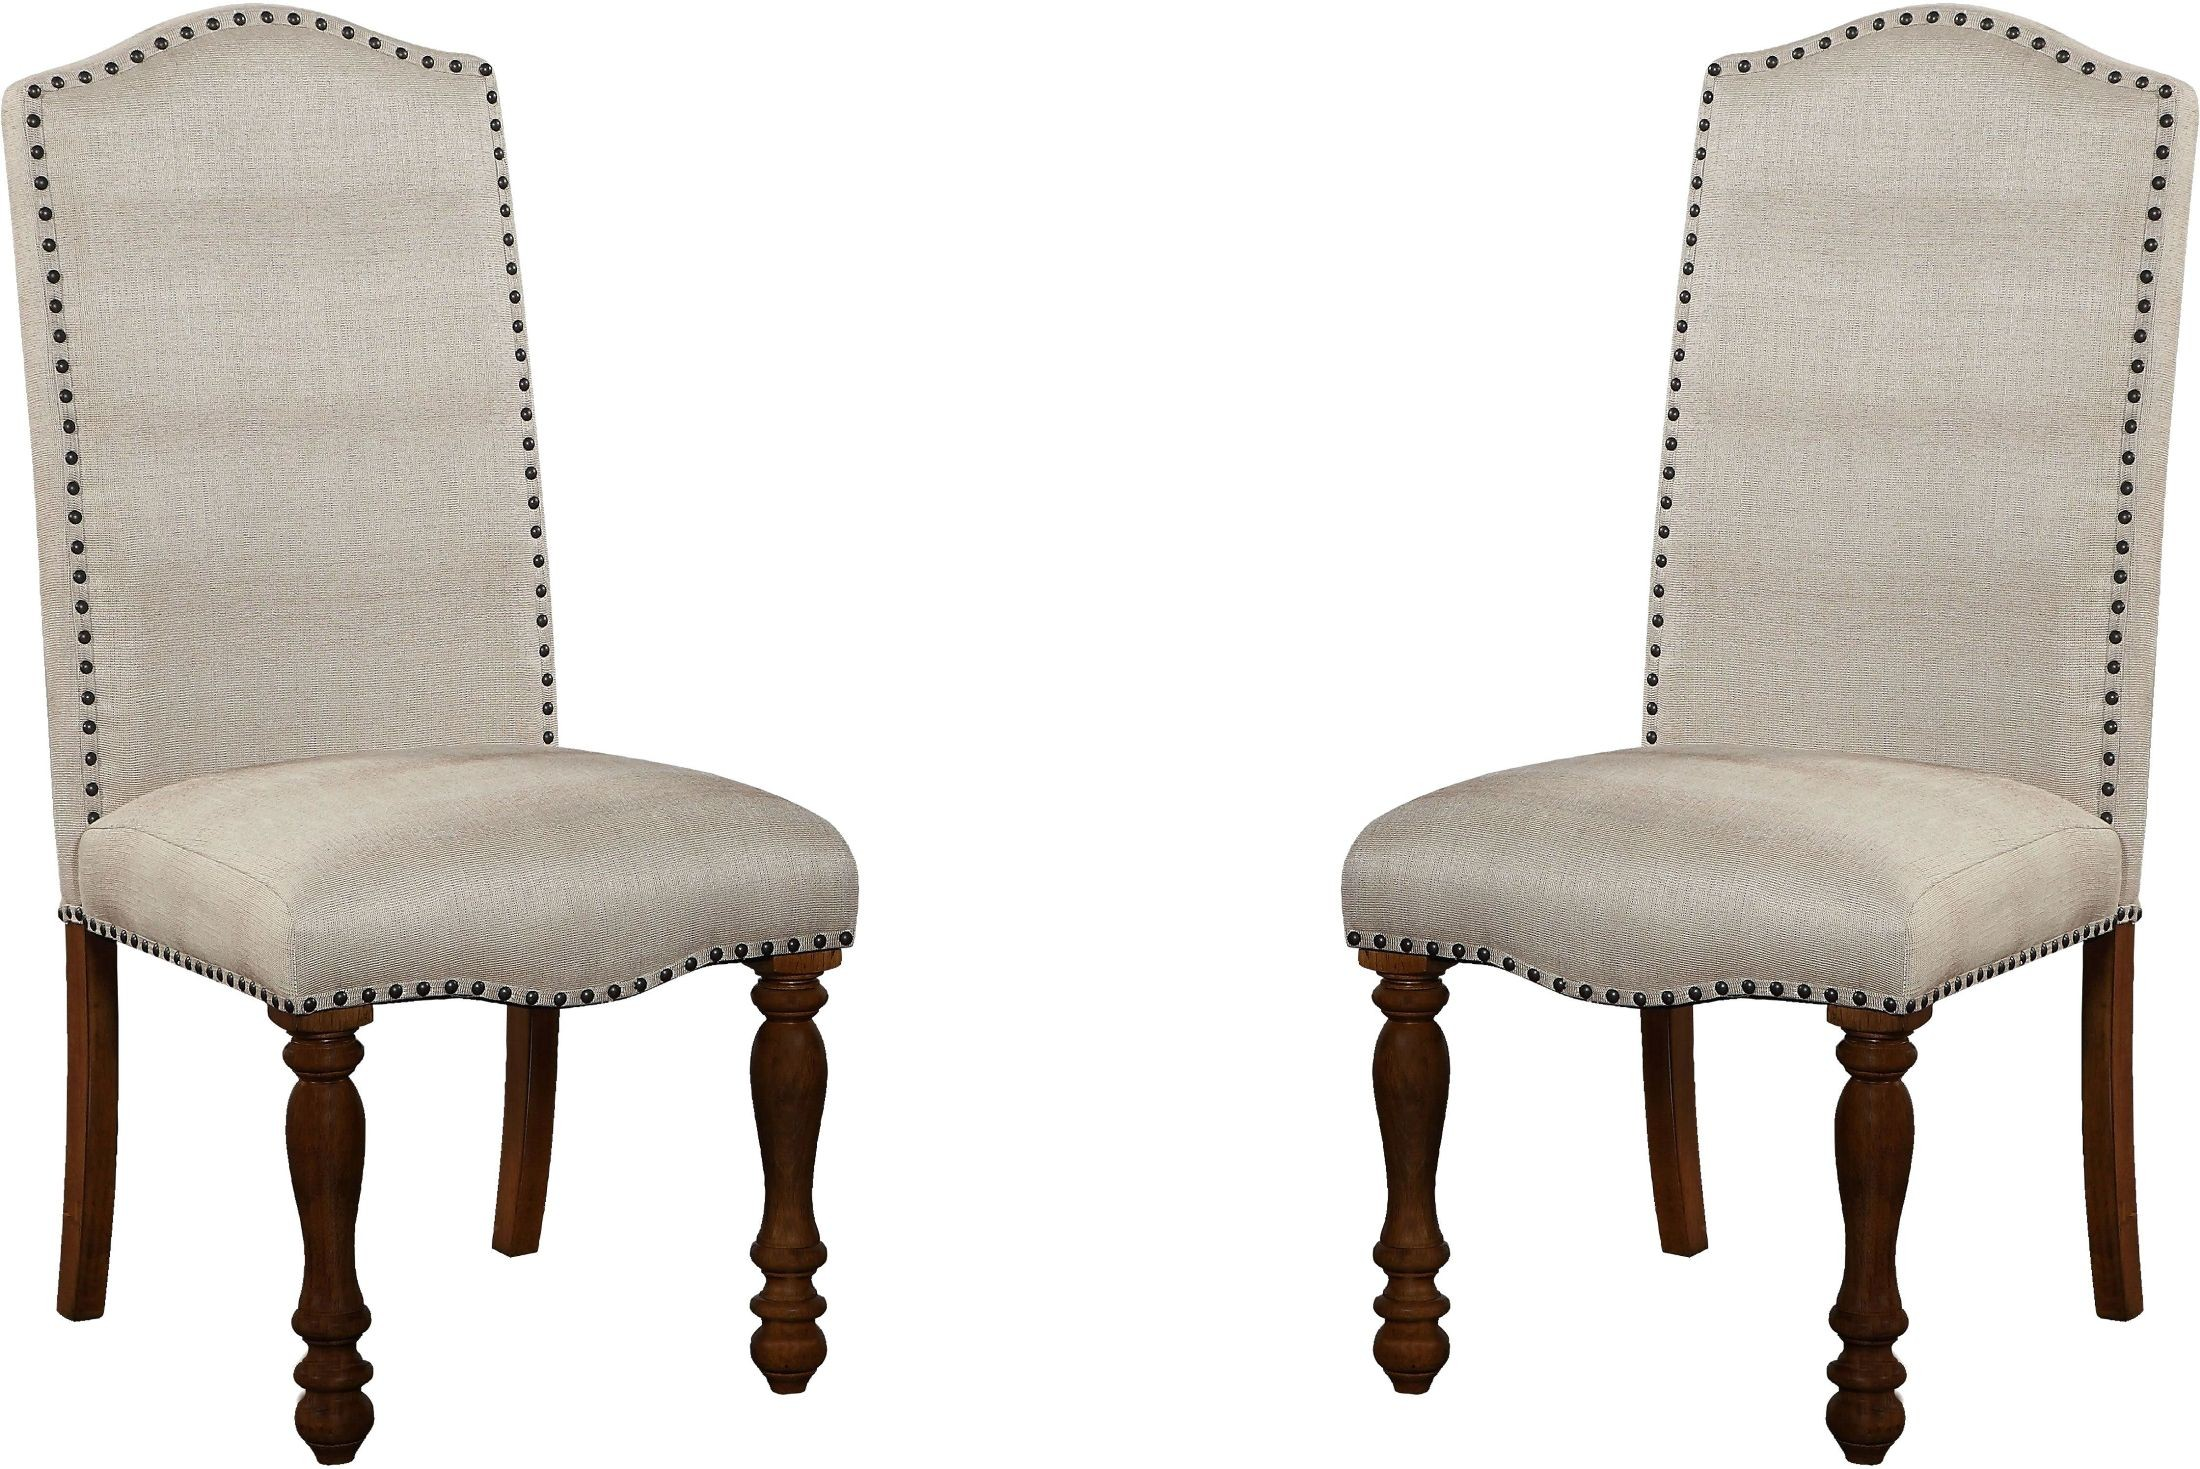 Bohemian Beige Side Chair Set Of 2 From Legends Furniture